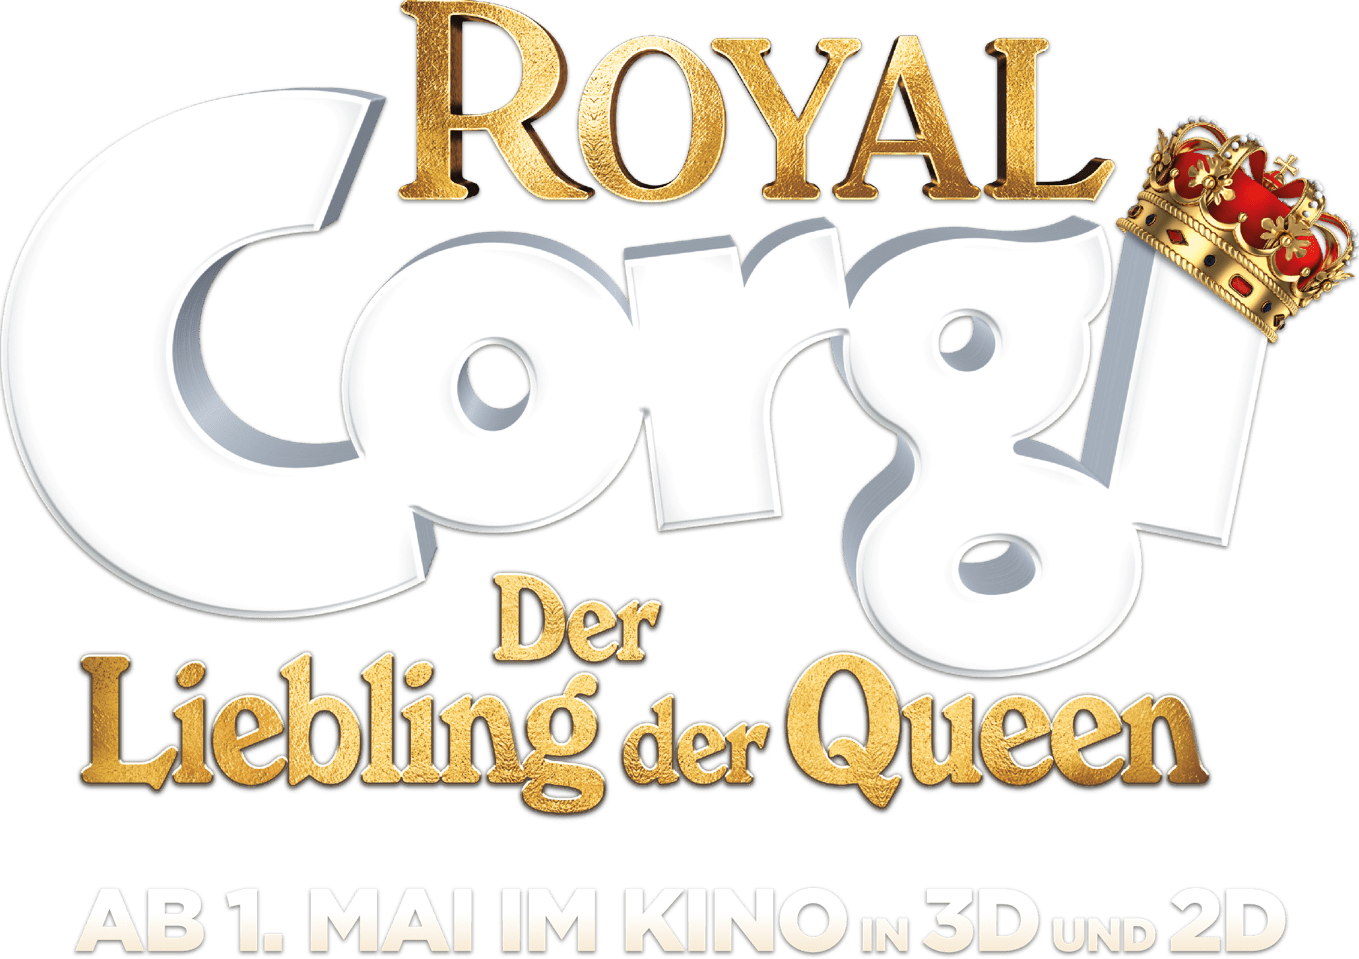 Royal Corgi - der Liebling der Queen : Story | Wild Bunch